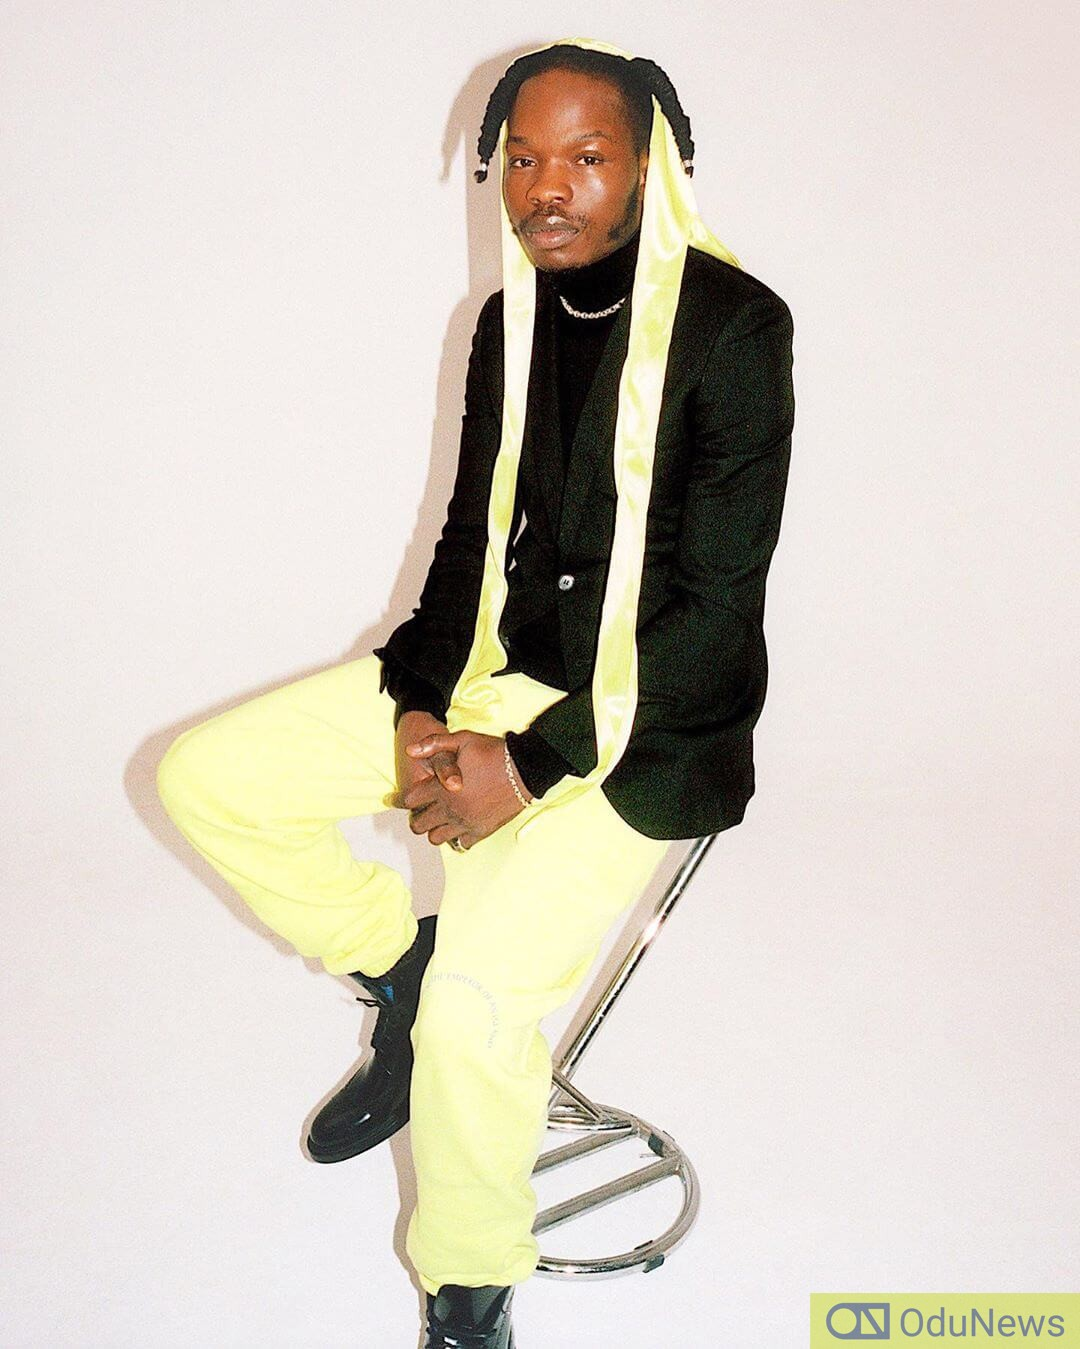 Naira Marley has amassed a staggering number of followership